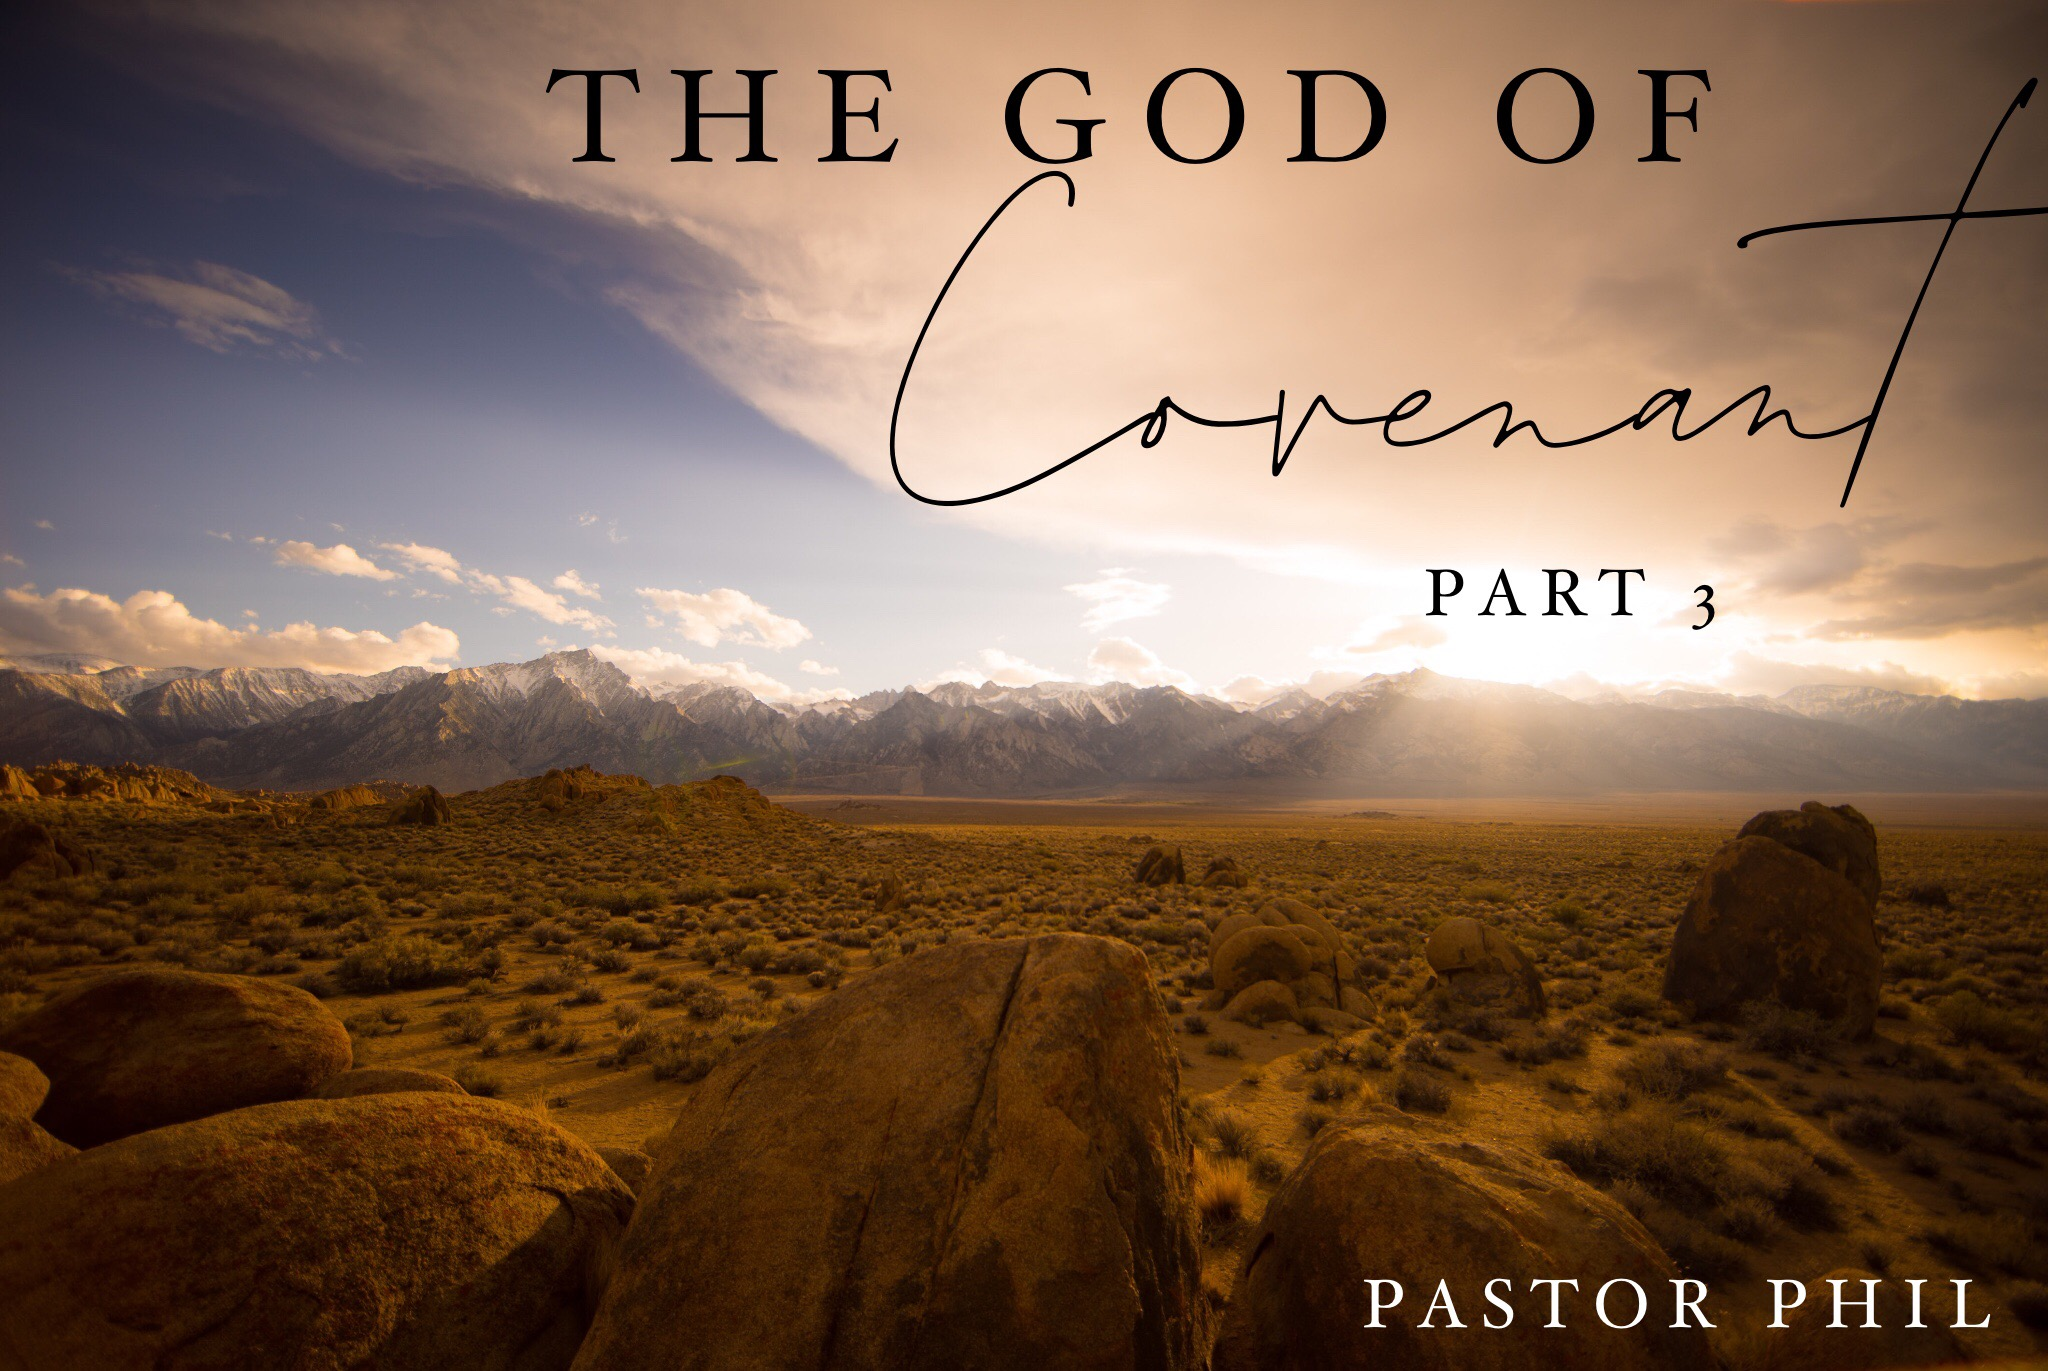 The God of Covenant Pt 3